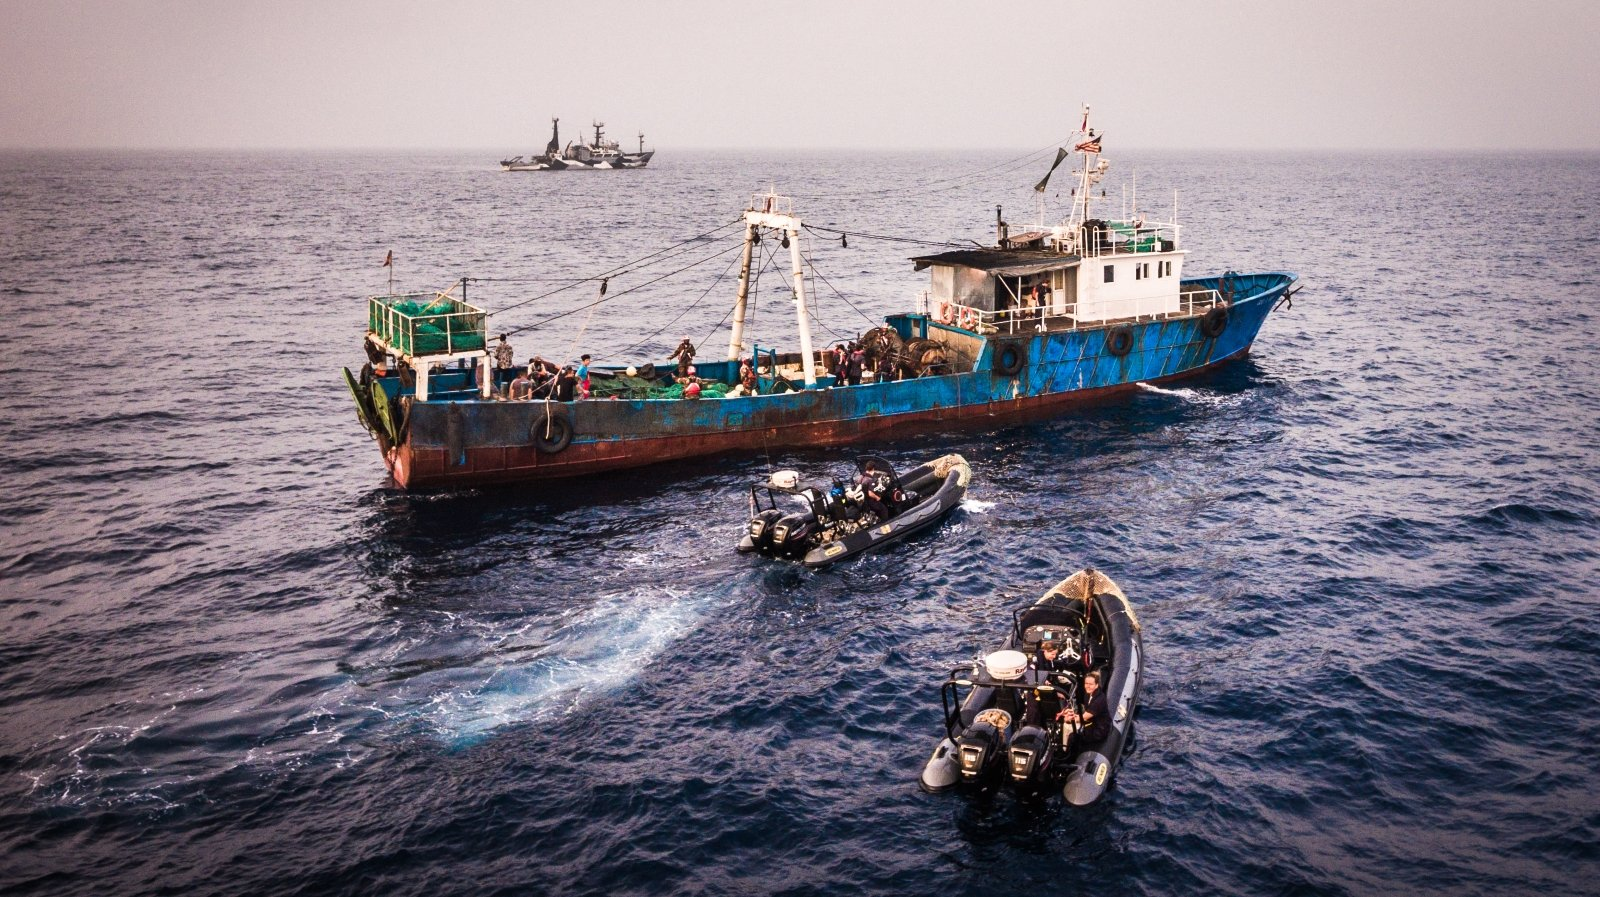 Sea Shepherd celebrates New Year with arrest of illegal fishing vessel in Liberia